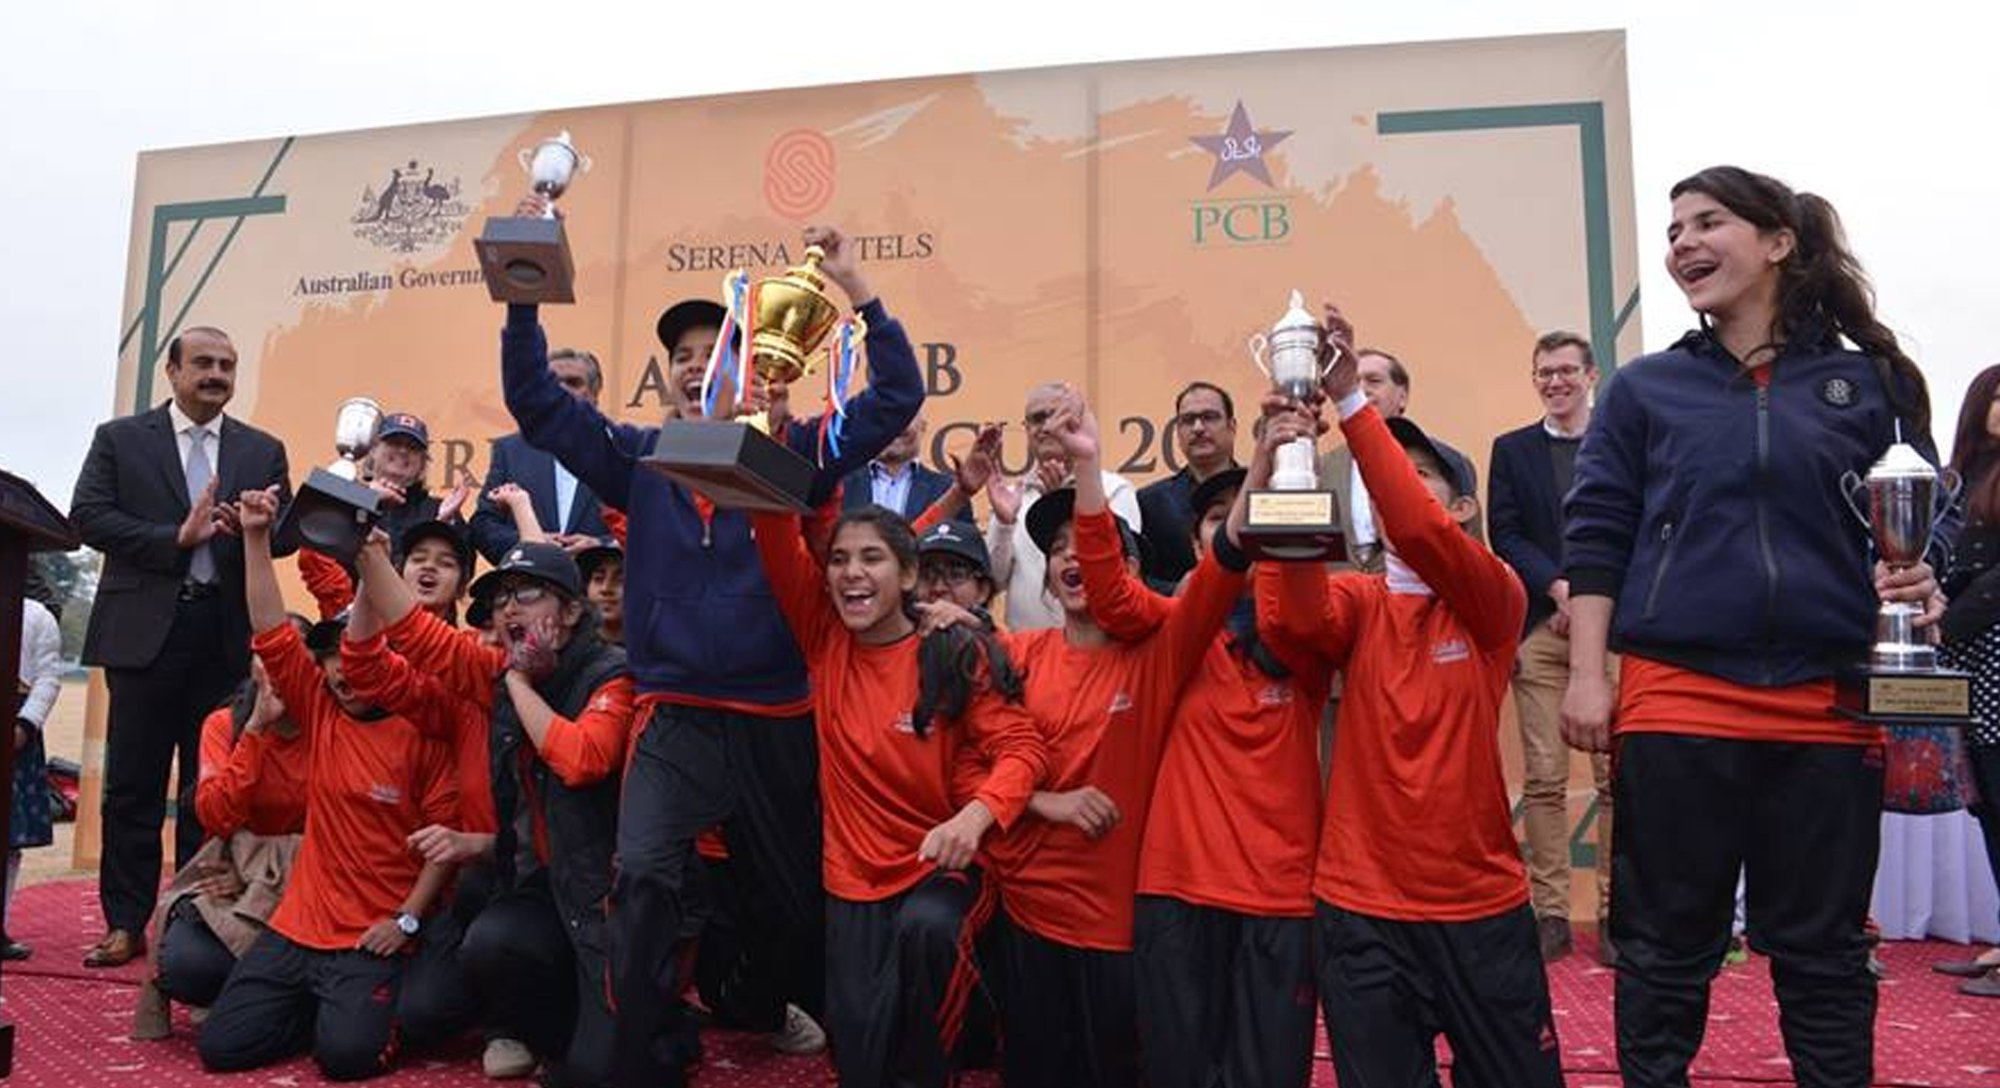 ahc pcb join hands to empower girls through cricket